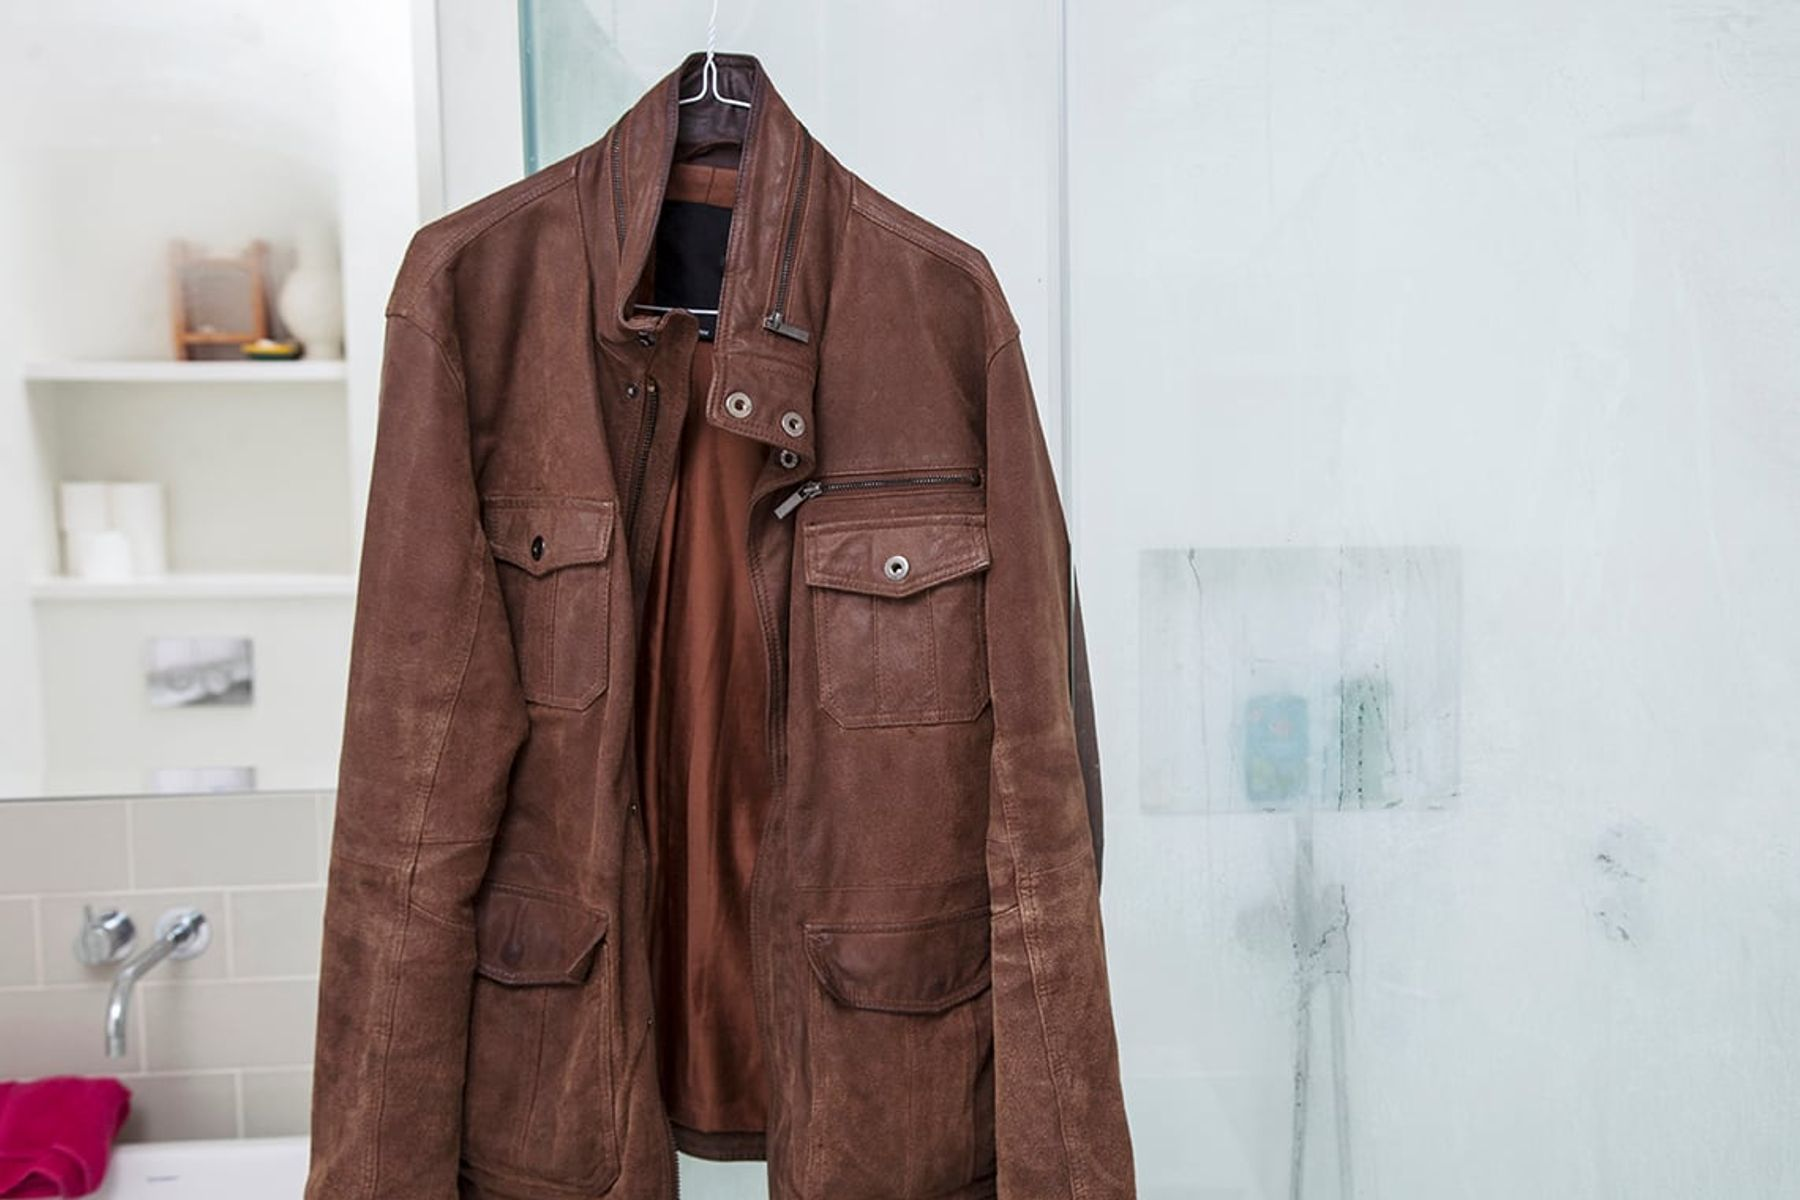 brown jacket hanging in the bathroom